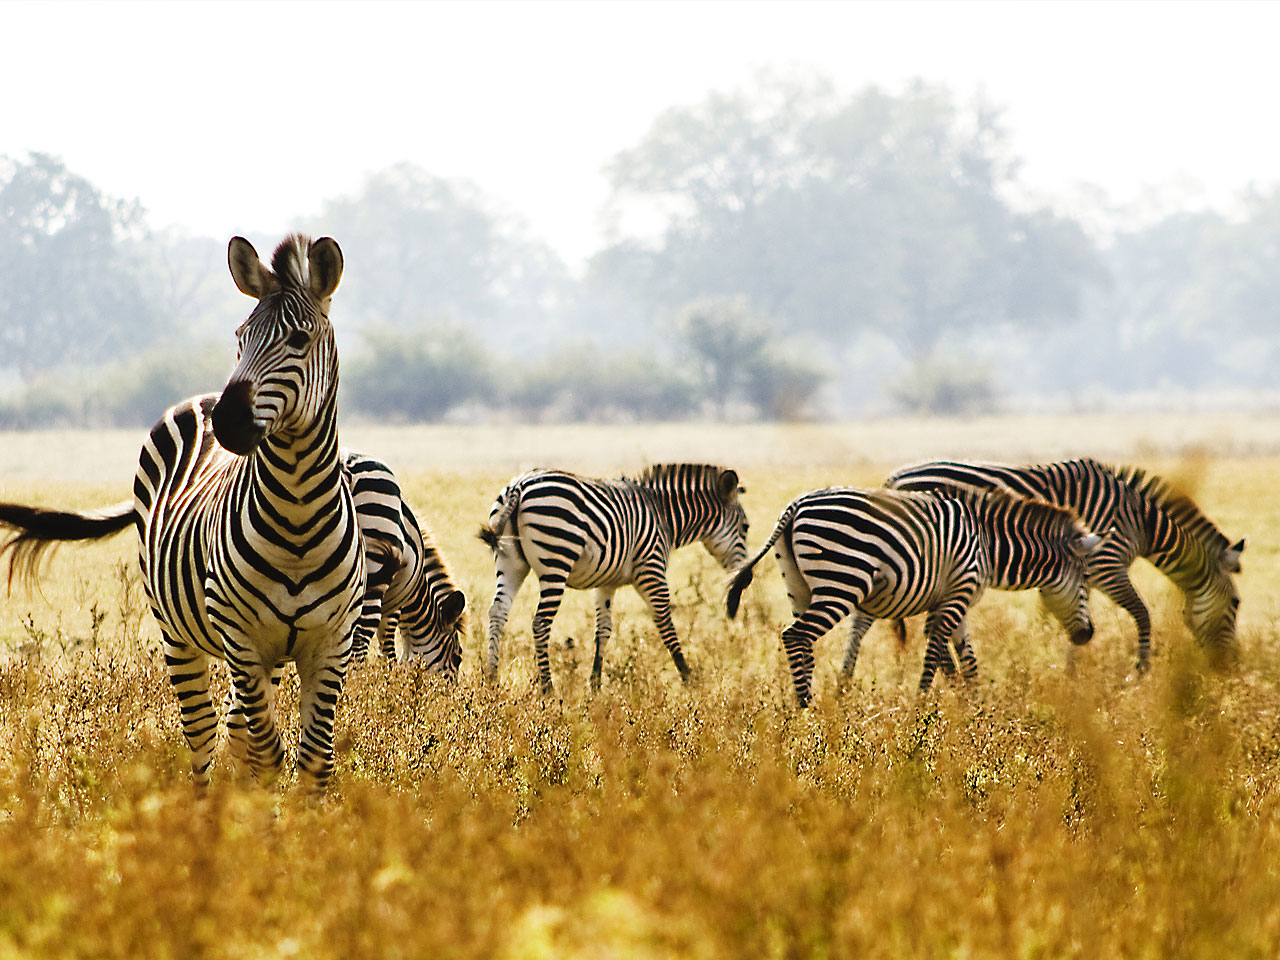 A zebra attentively looking into the distance as others walk behind in the grass.